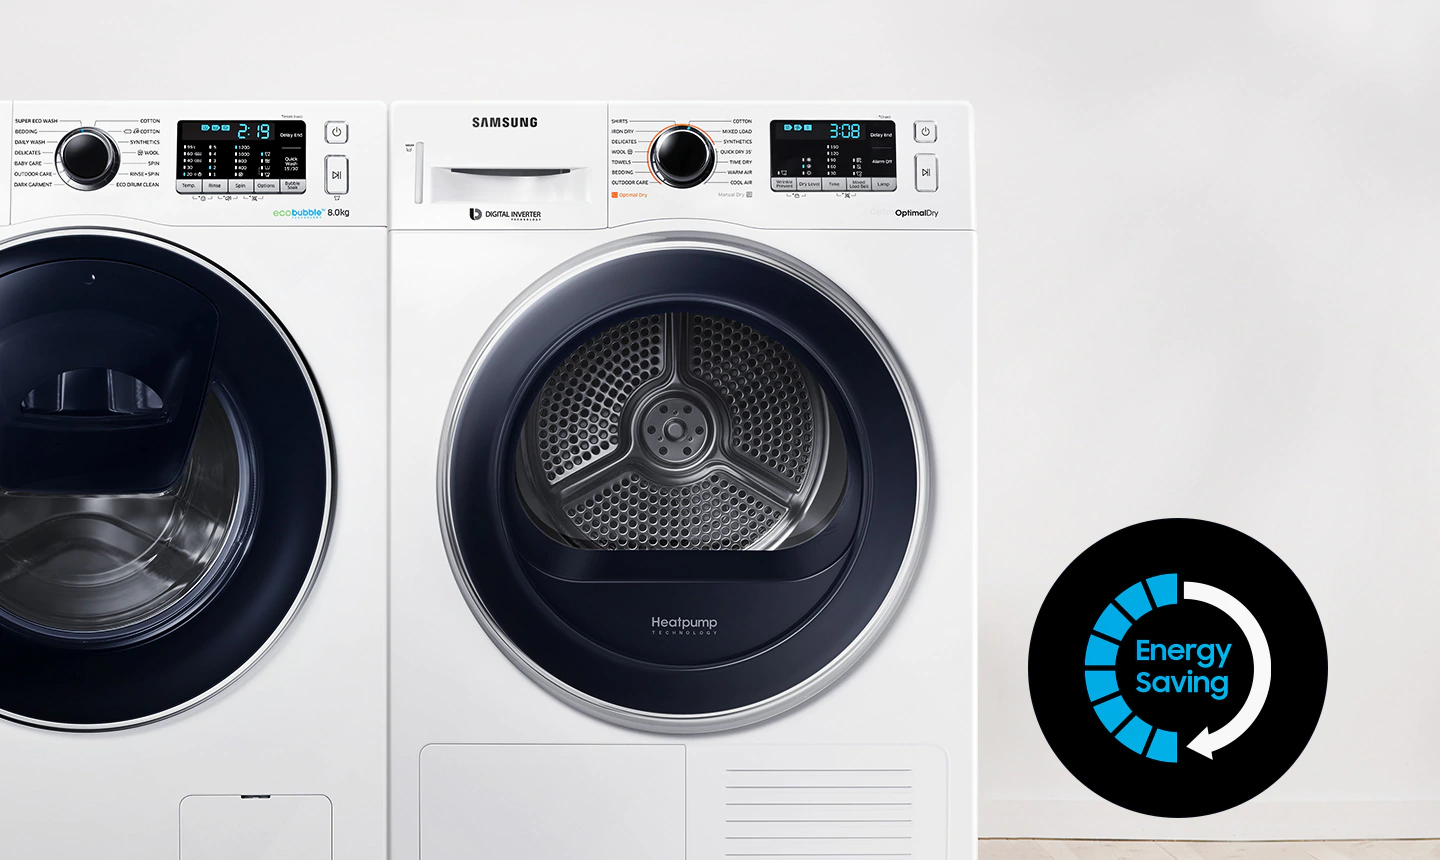 Samsung front load Tumble Dryer with Heatpump technology